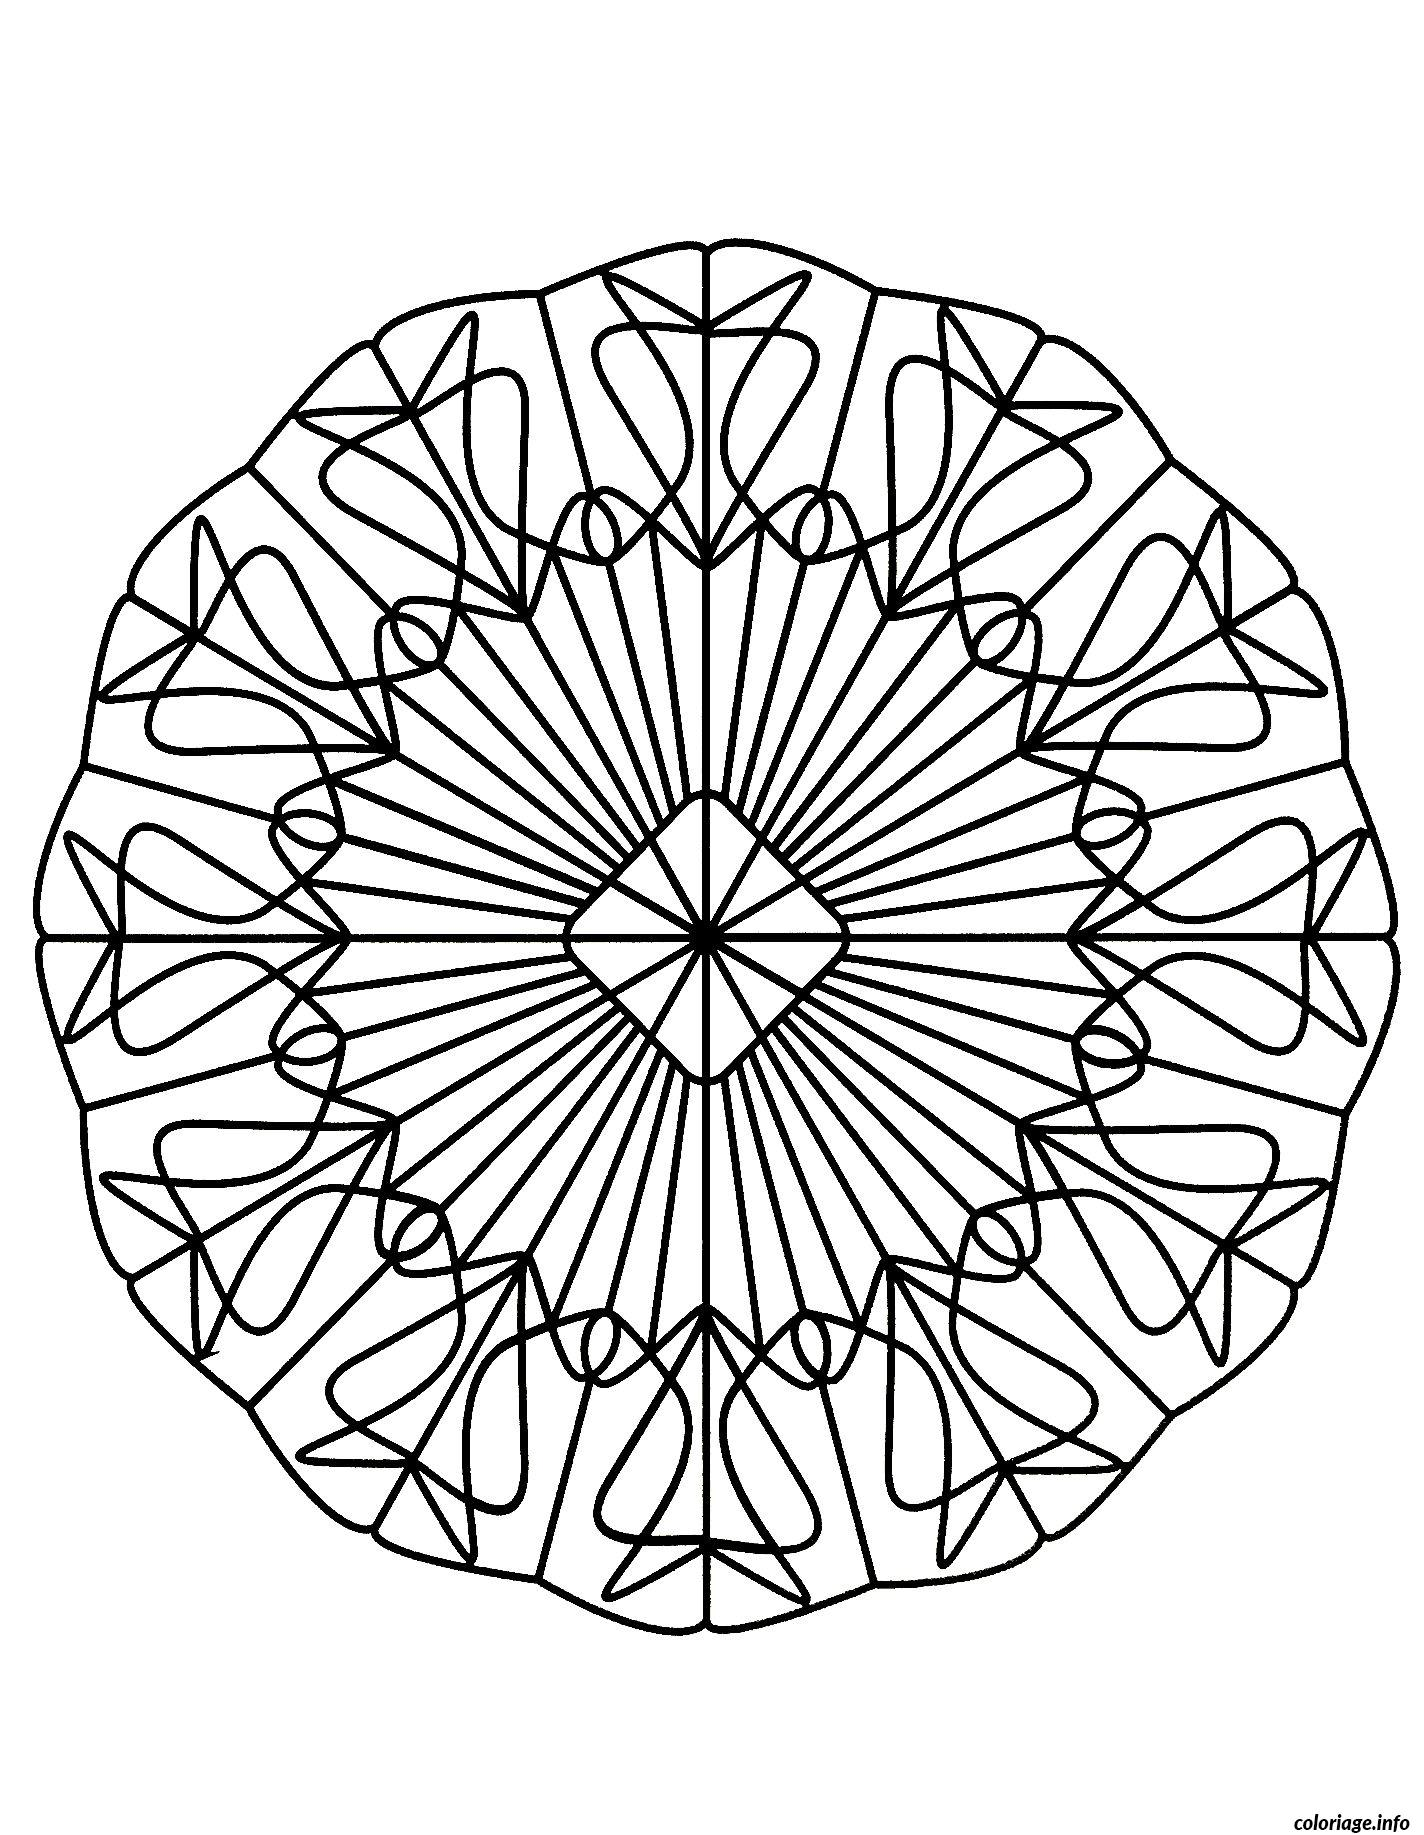 Coloriage mandalas to download for free 20 dessin - Coloriages mandalas ...